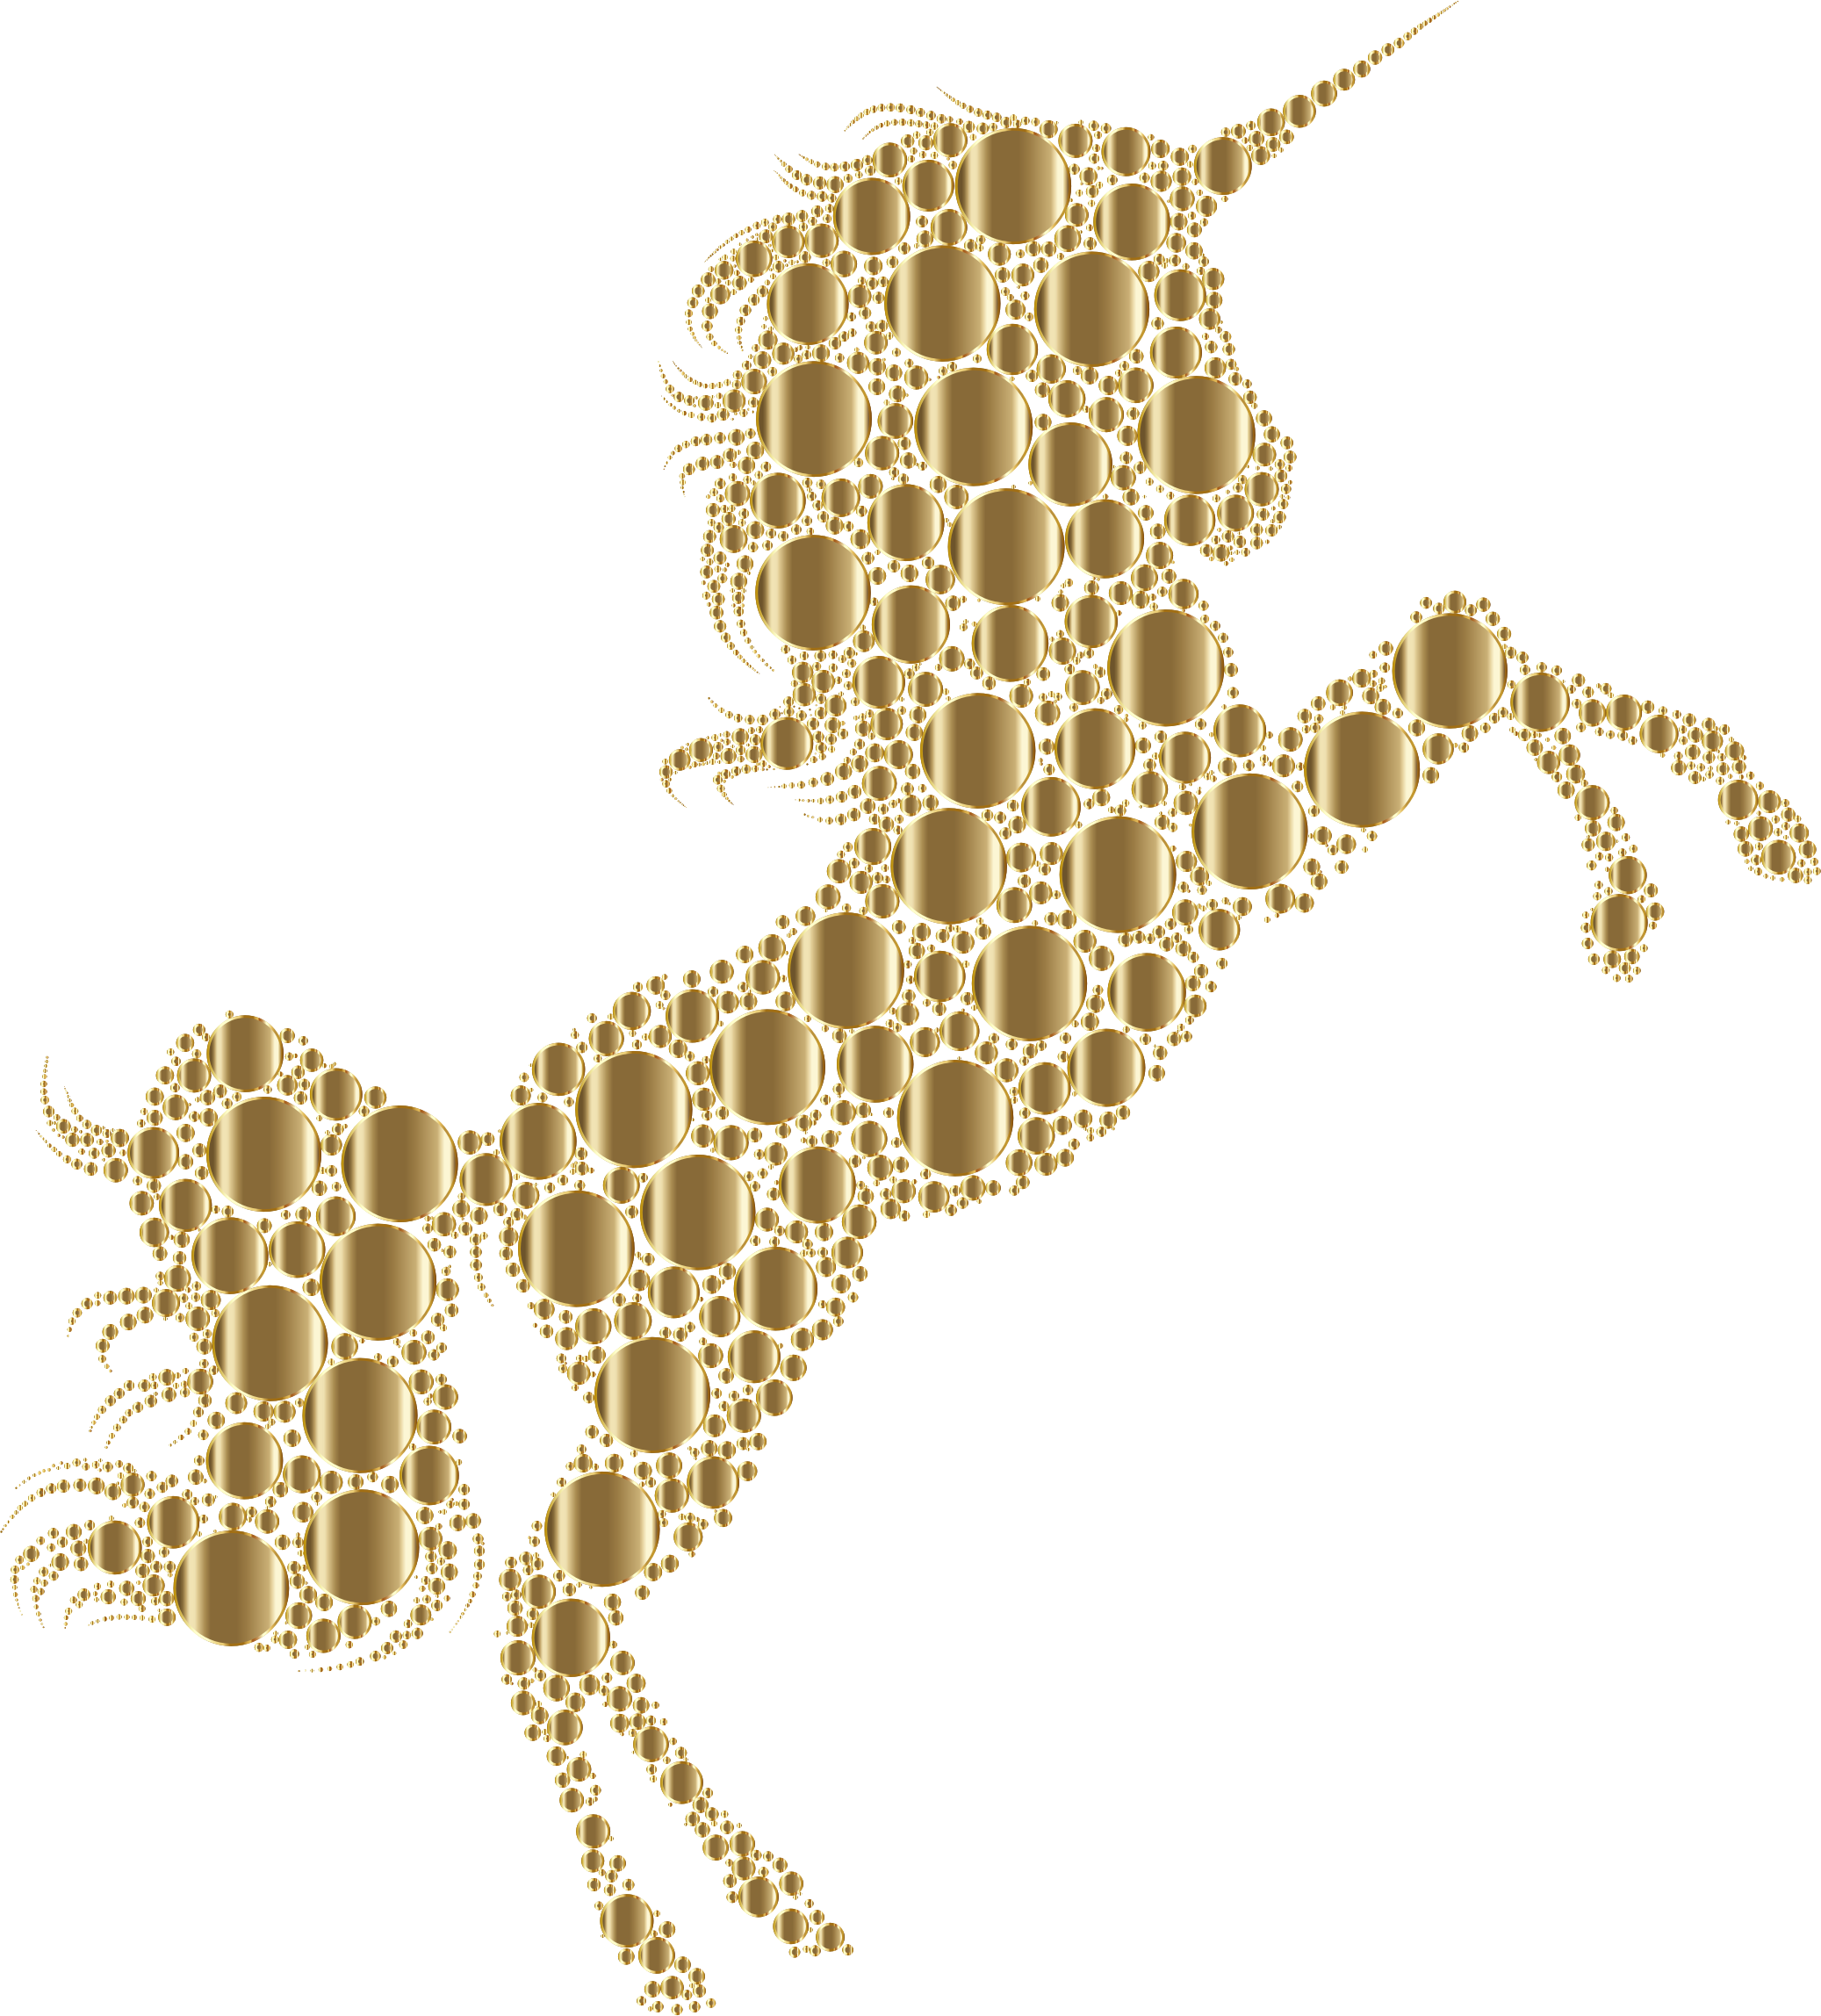 Gold unicorn png. Clipart silhouette circles no